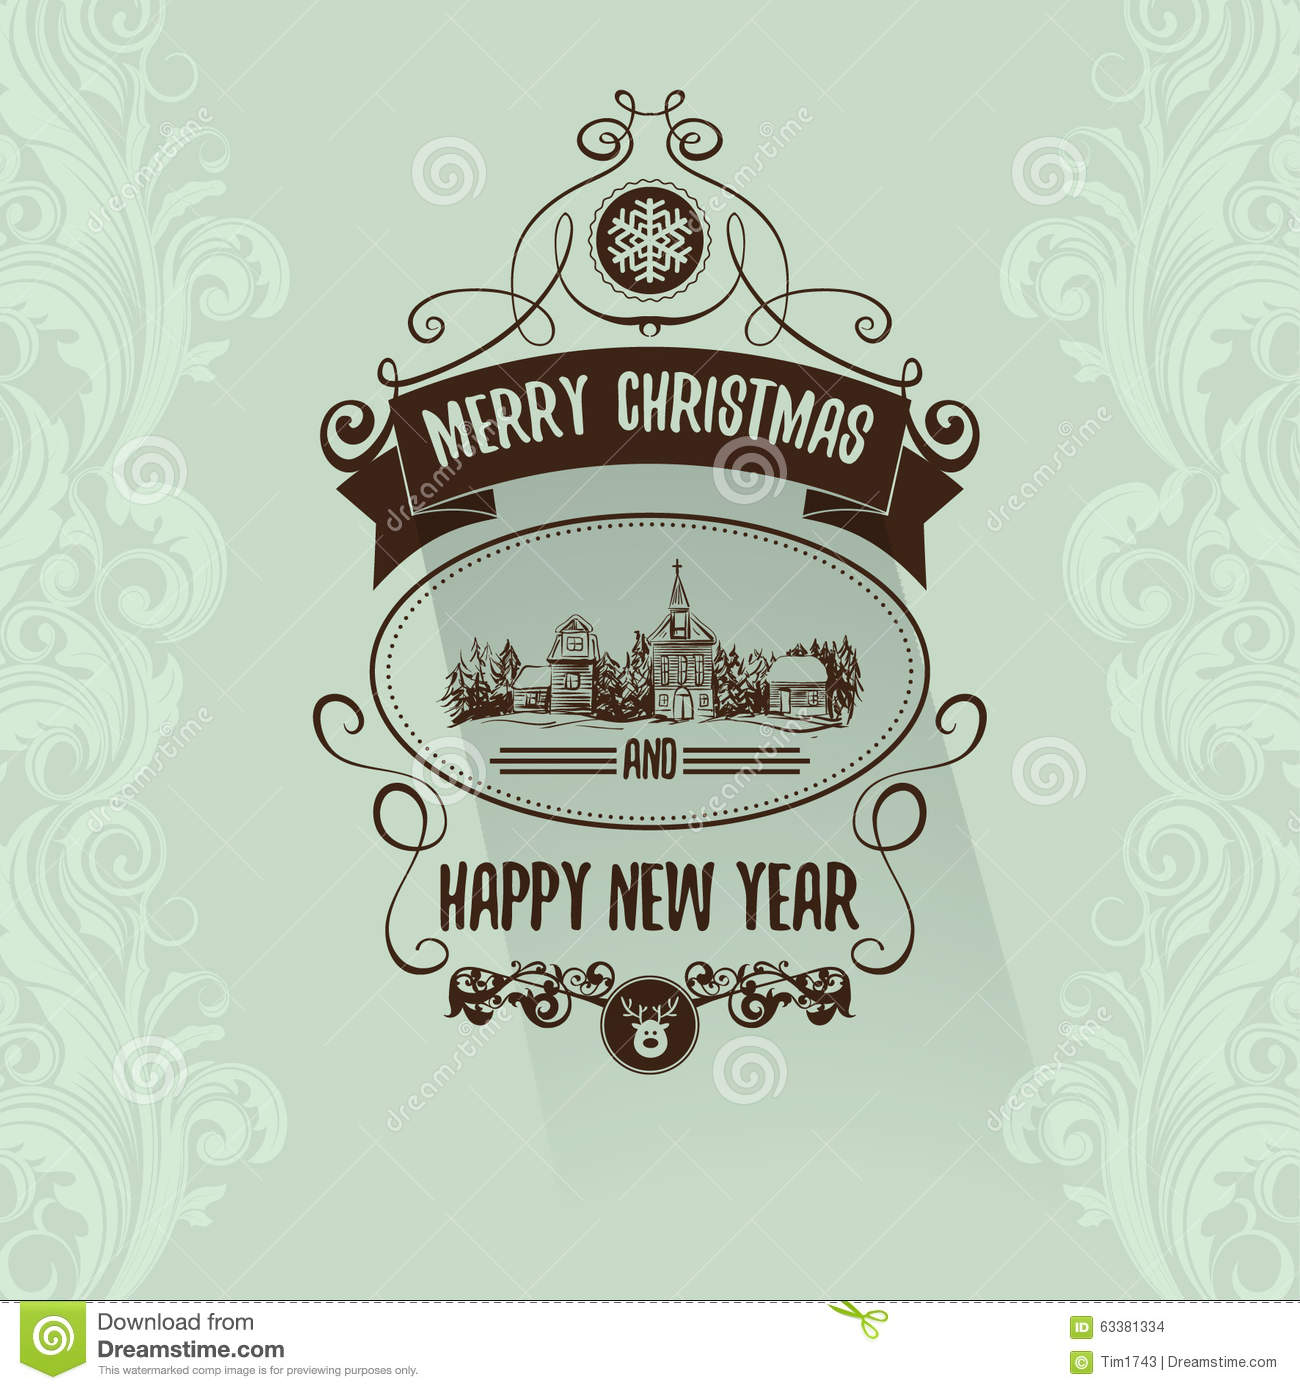 Retro Simple Vintage Merry Christmas Greeting Card With Happy New